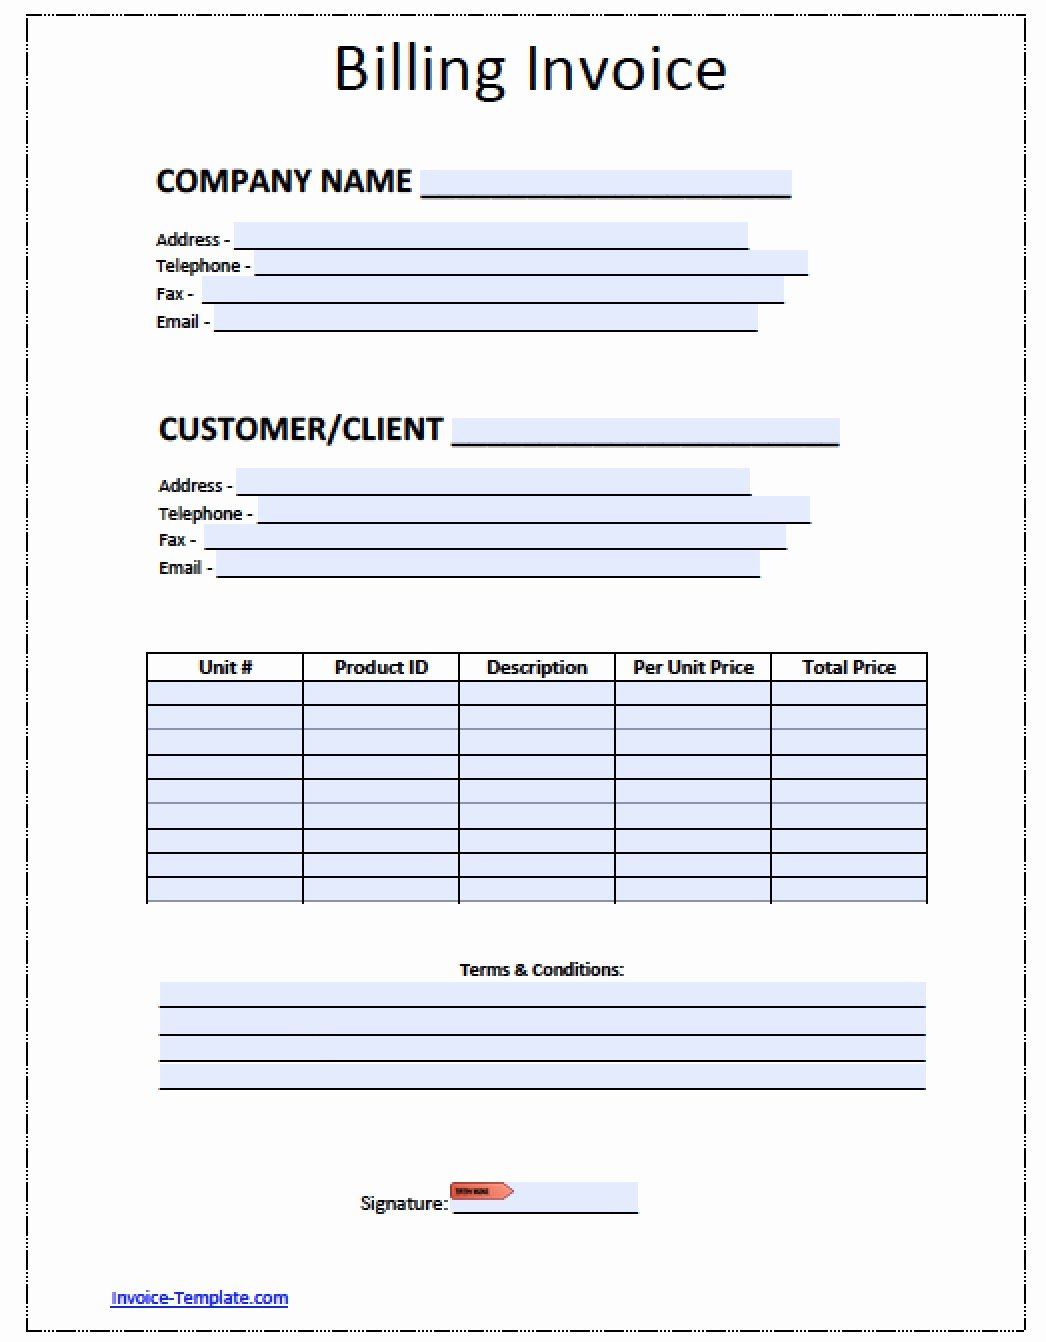 Basic Invoice Template Word Lovely Free Blank Invoice Template for Excel Excel Template